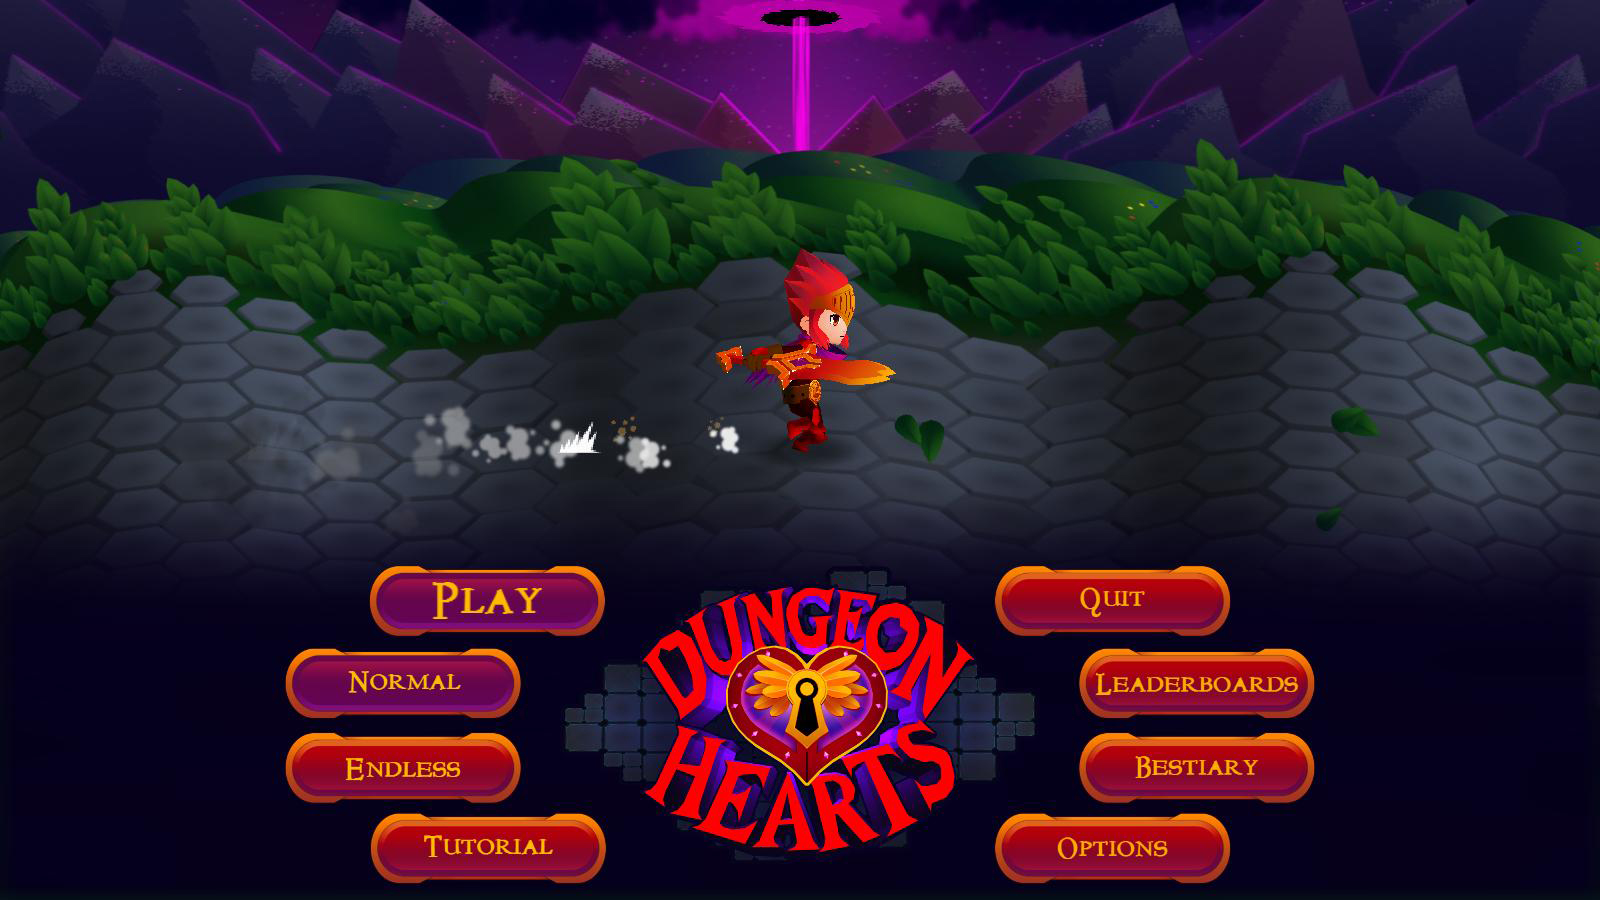 Cheap and Dirty Gamer: Dungeon Hearts Requires No Bribes